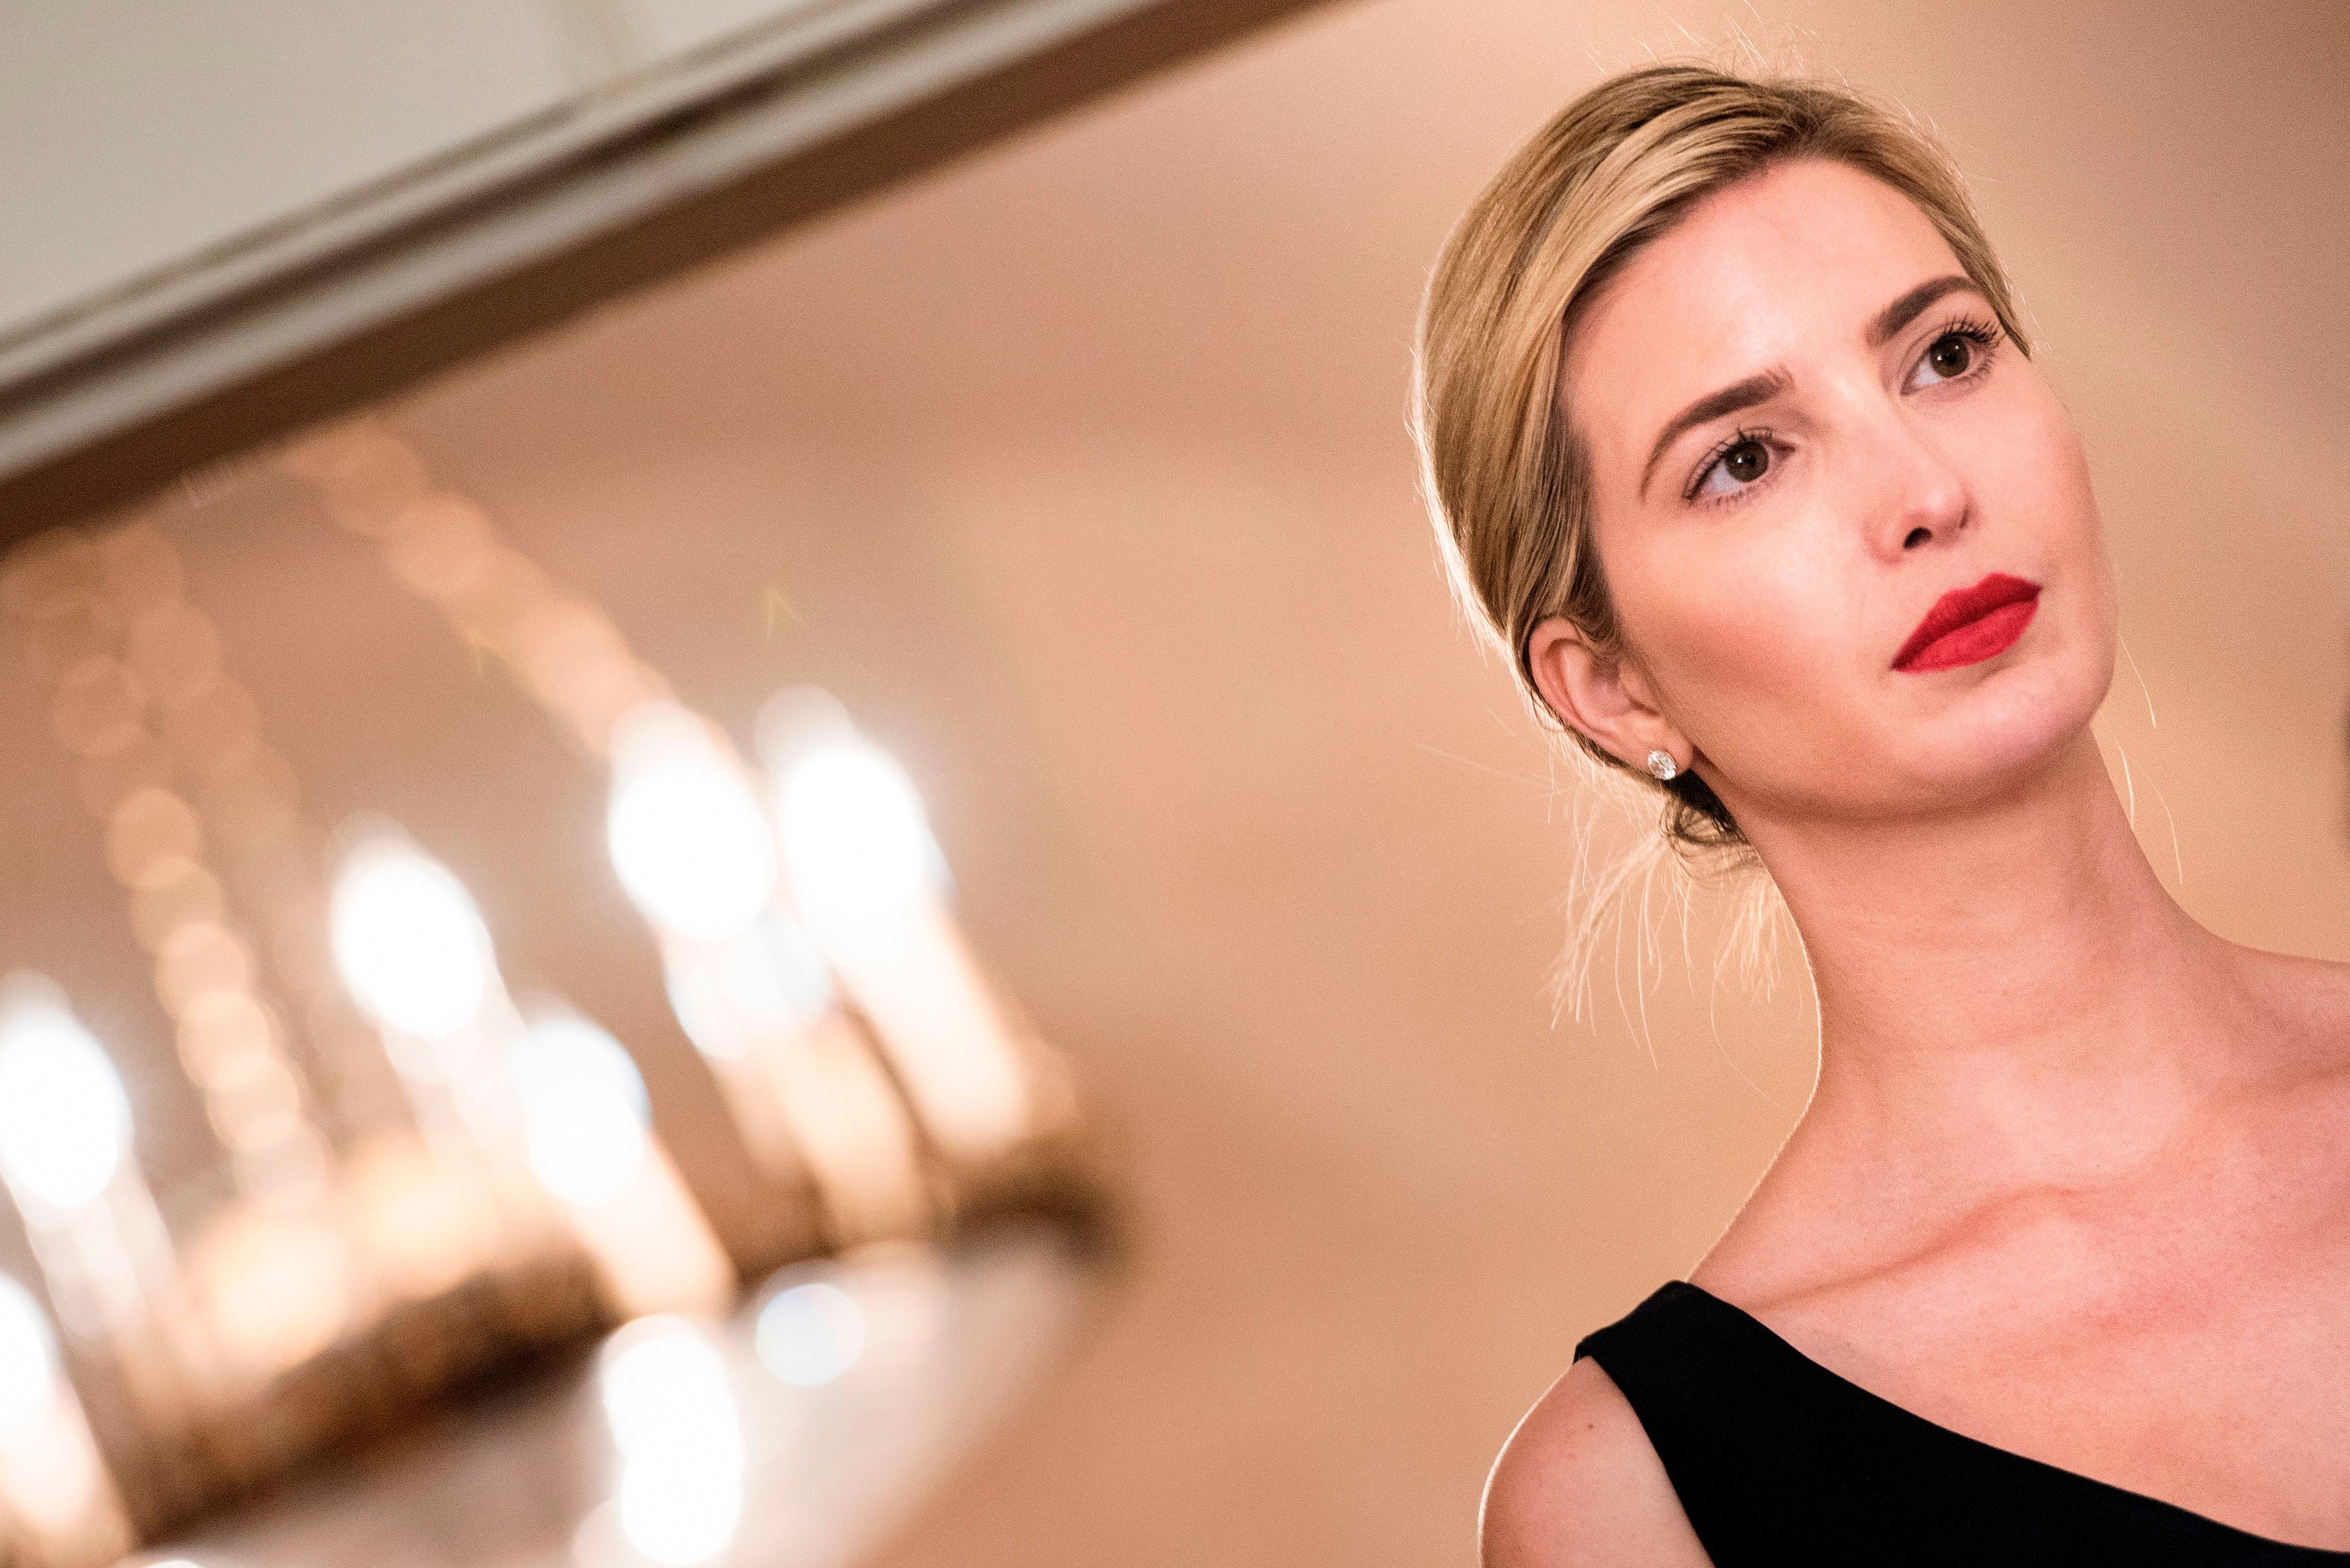 'Team Ivanka' Finally Addresses Its Chinese Factory Scandal, Ignores Jailed